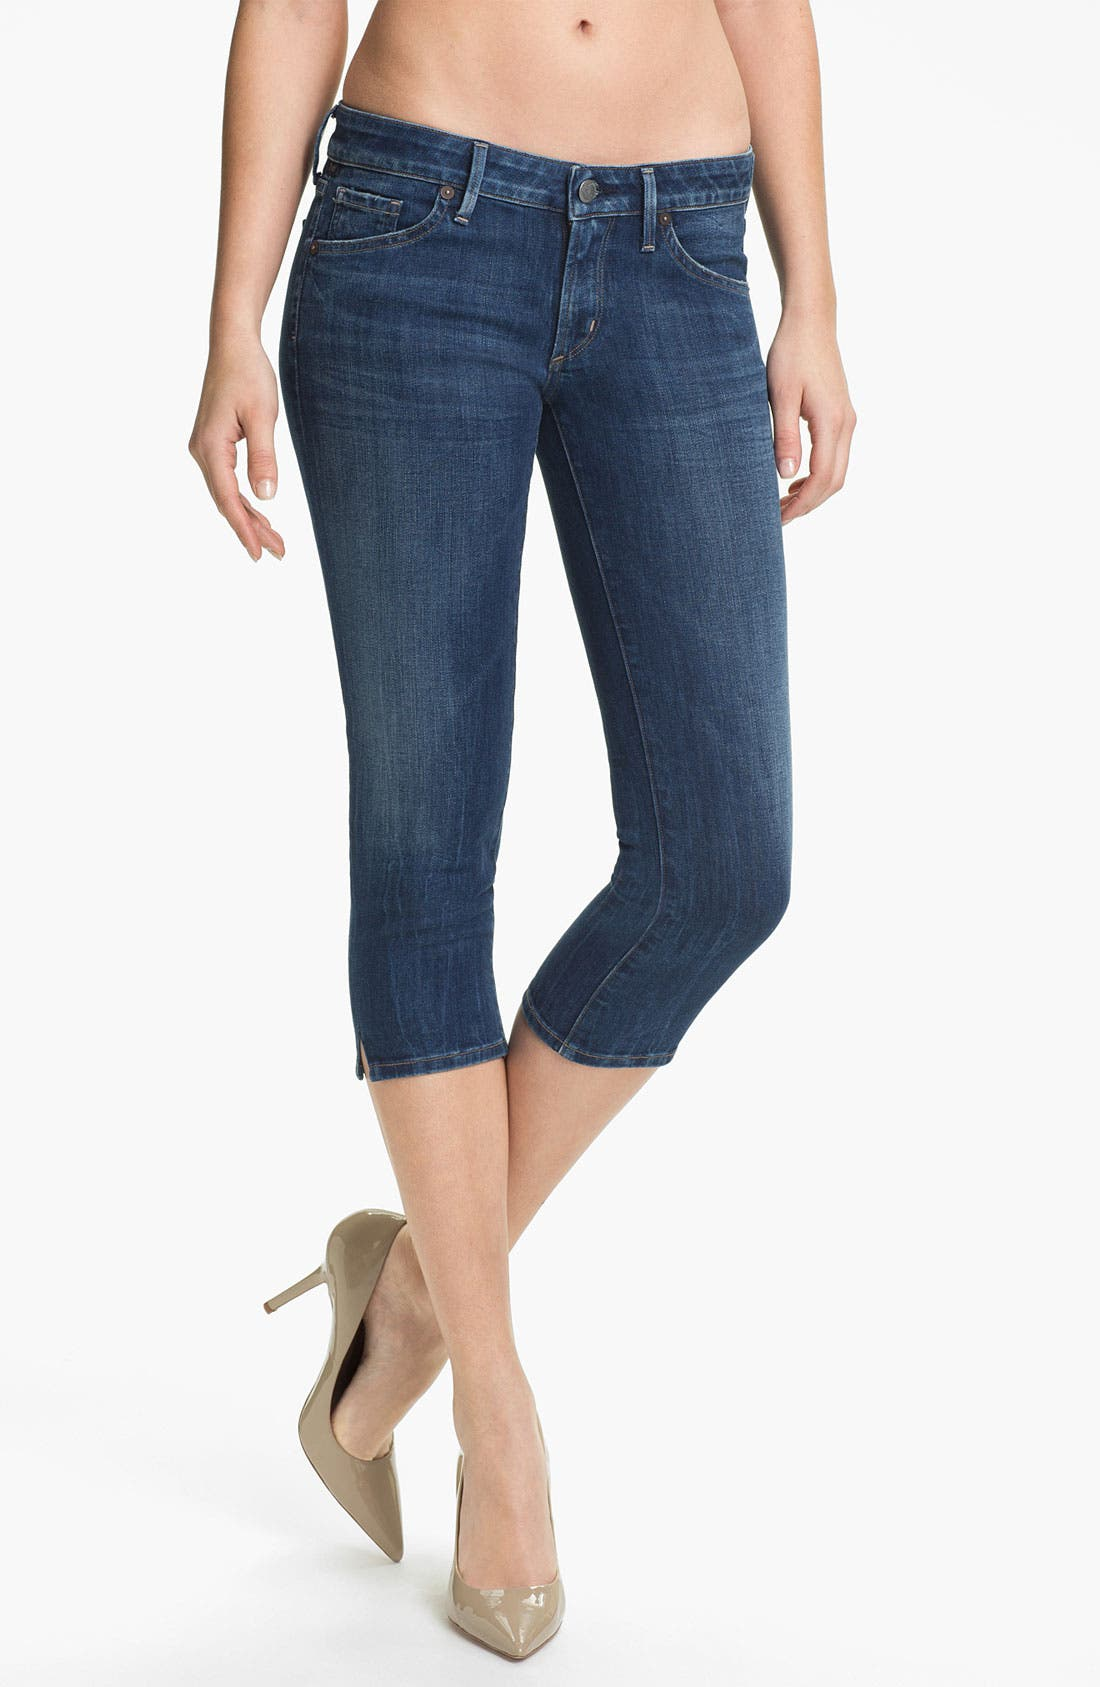 Alternate Image 1 Selected - Citizens of Humanity 'Racer' Crop Skinny Jeans (Envy)